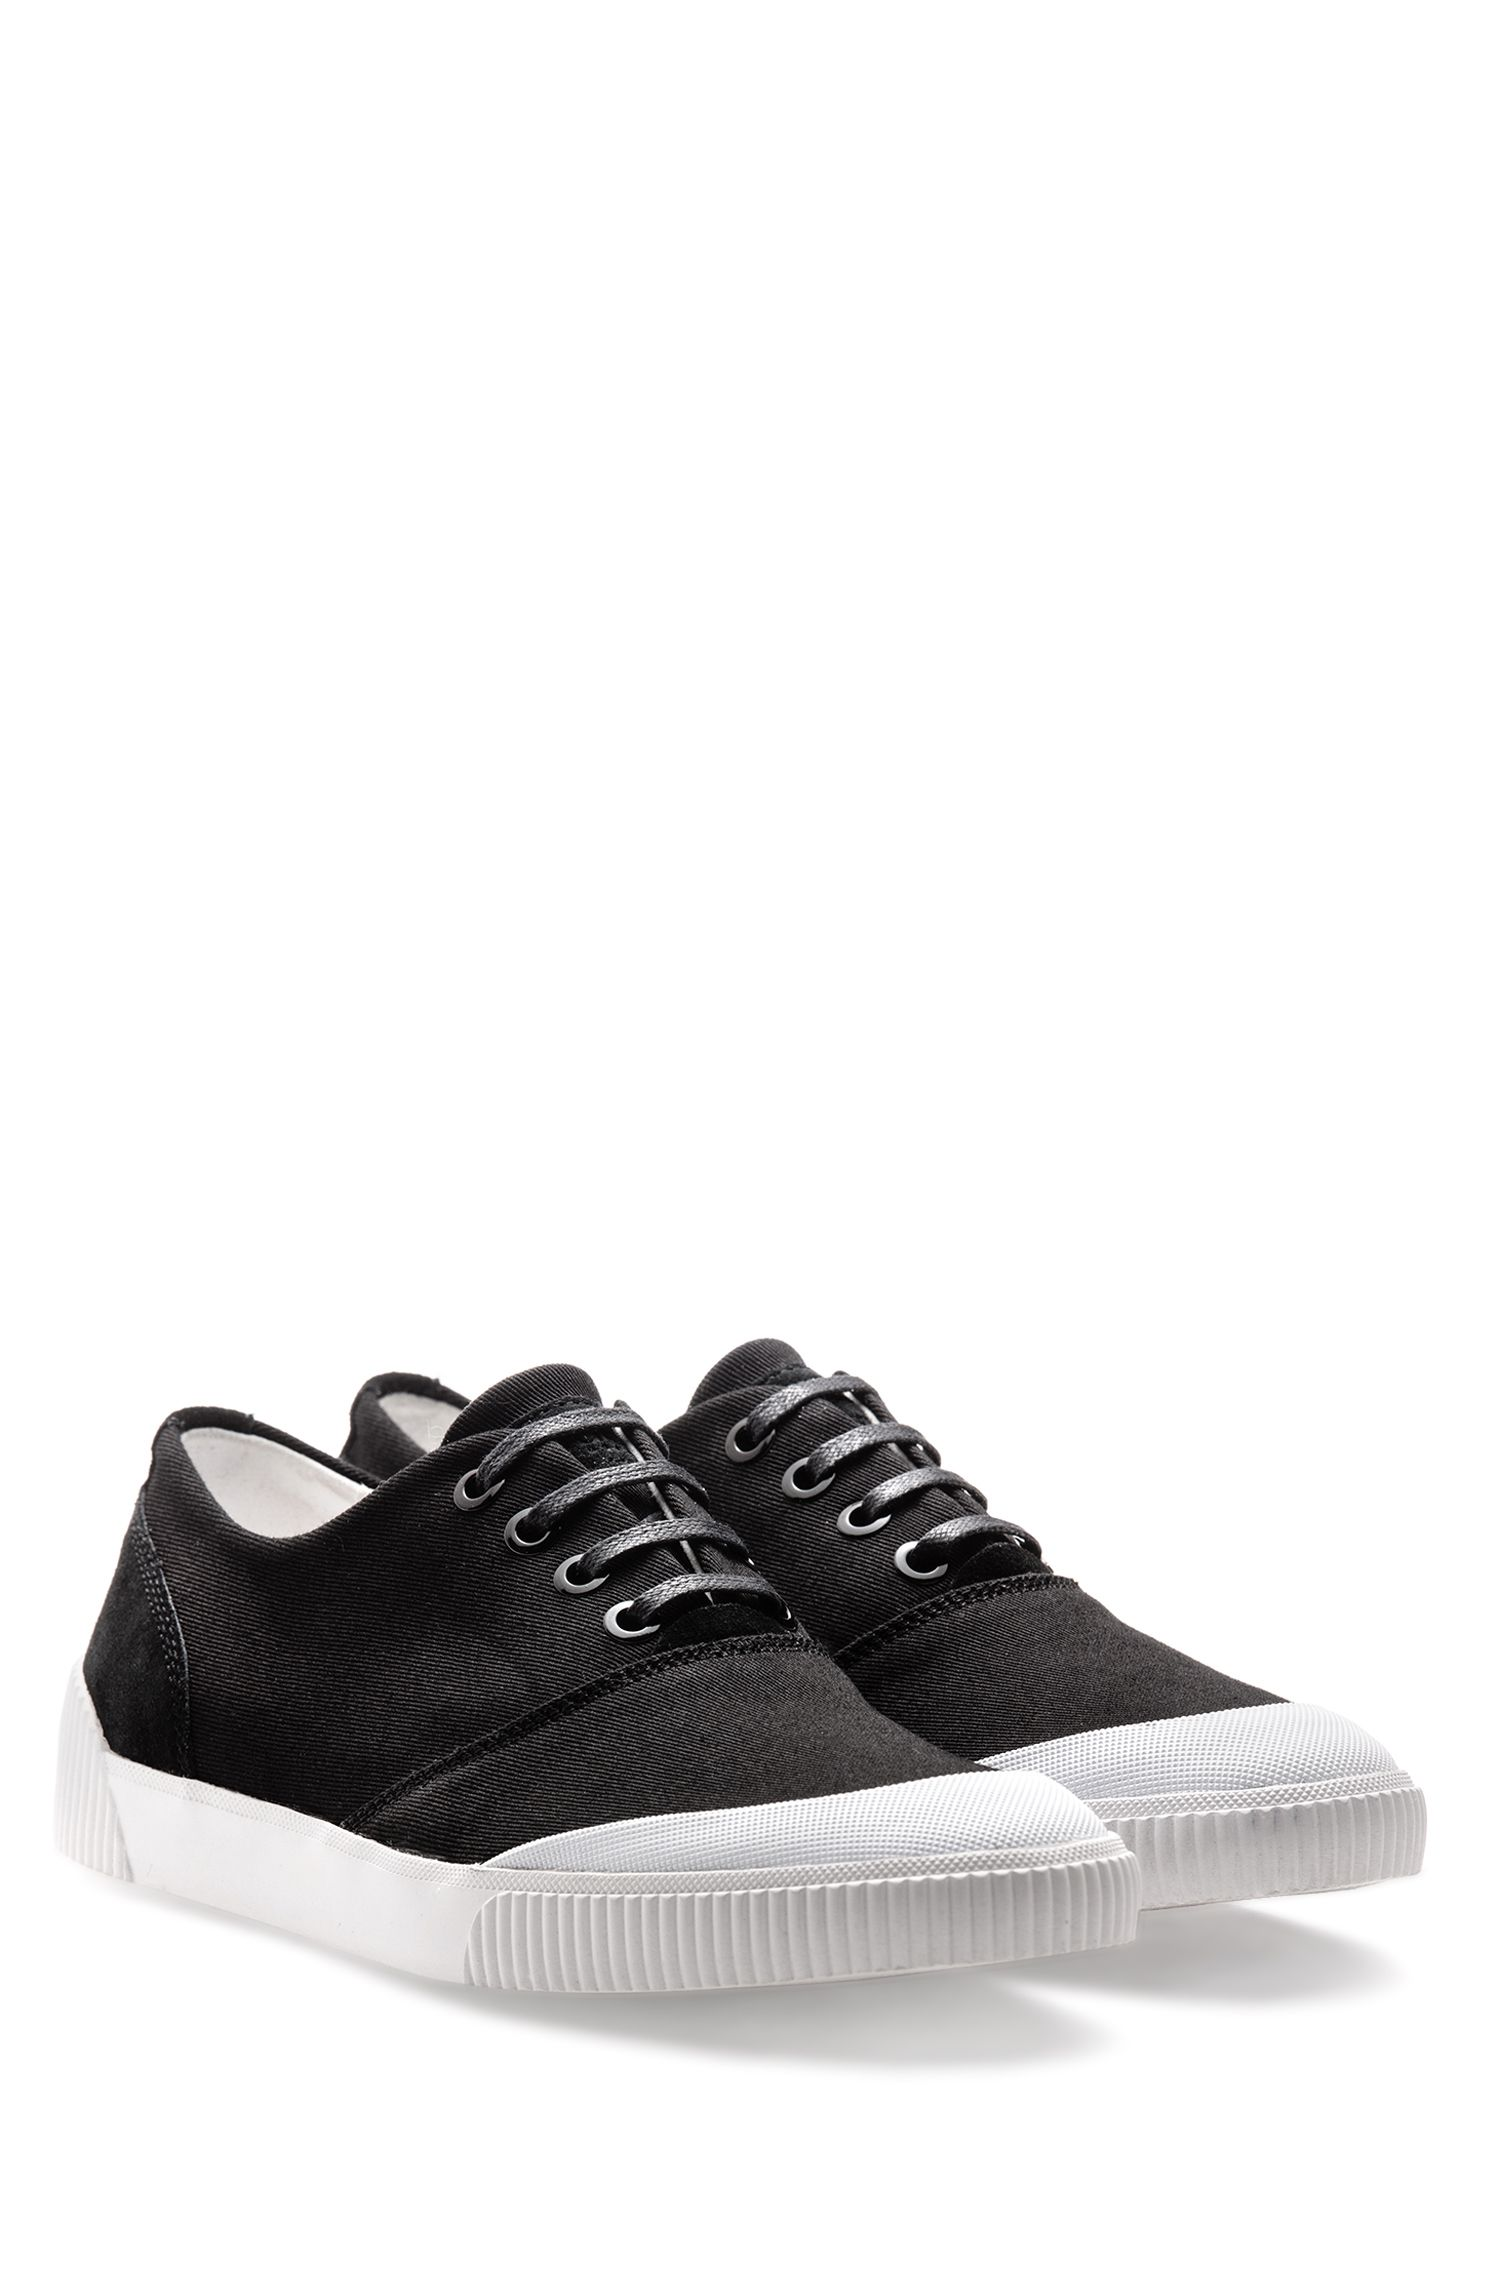 Low-top trainers in Italian leather and canvas